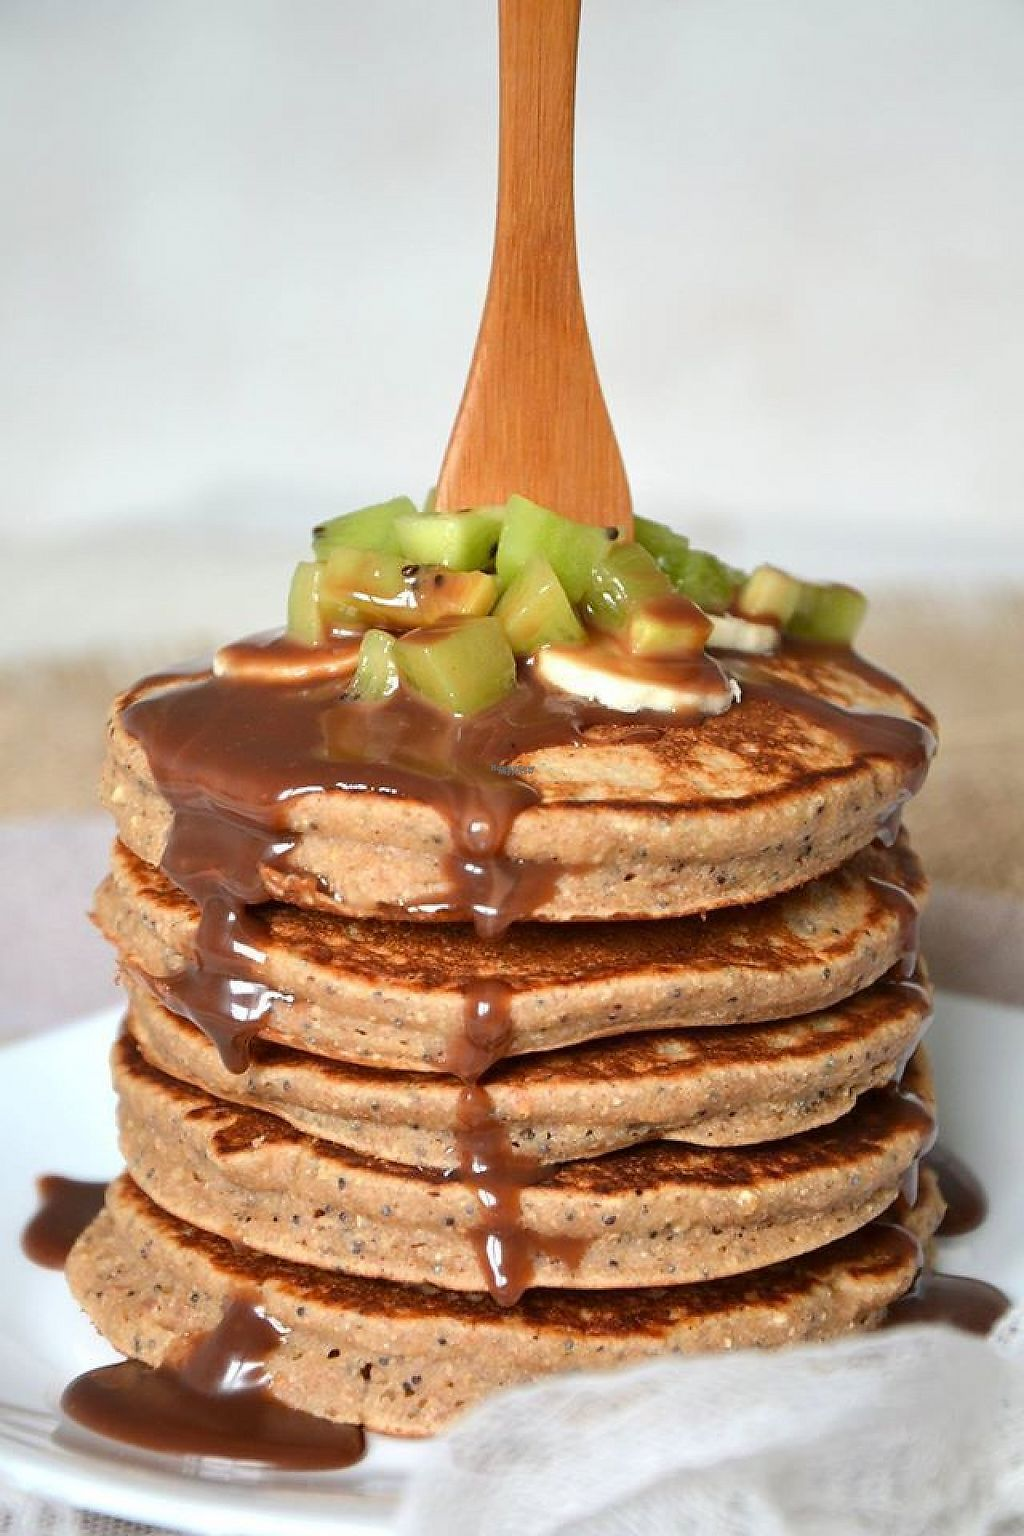 """Photo of La Vie Claire  by <a href=""""/members/profile/community"""">community</a> <br/>vegan pancakes  <br/> February 4, 2017  - <a href='/contact/abuse/image/72034/221886'>Report</a>"""